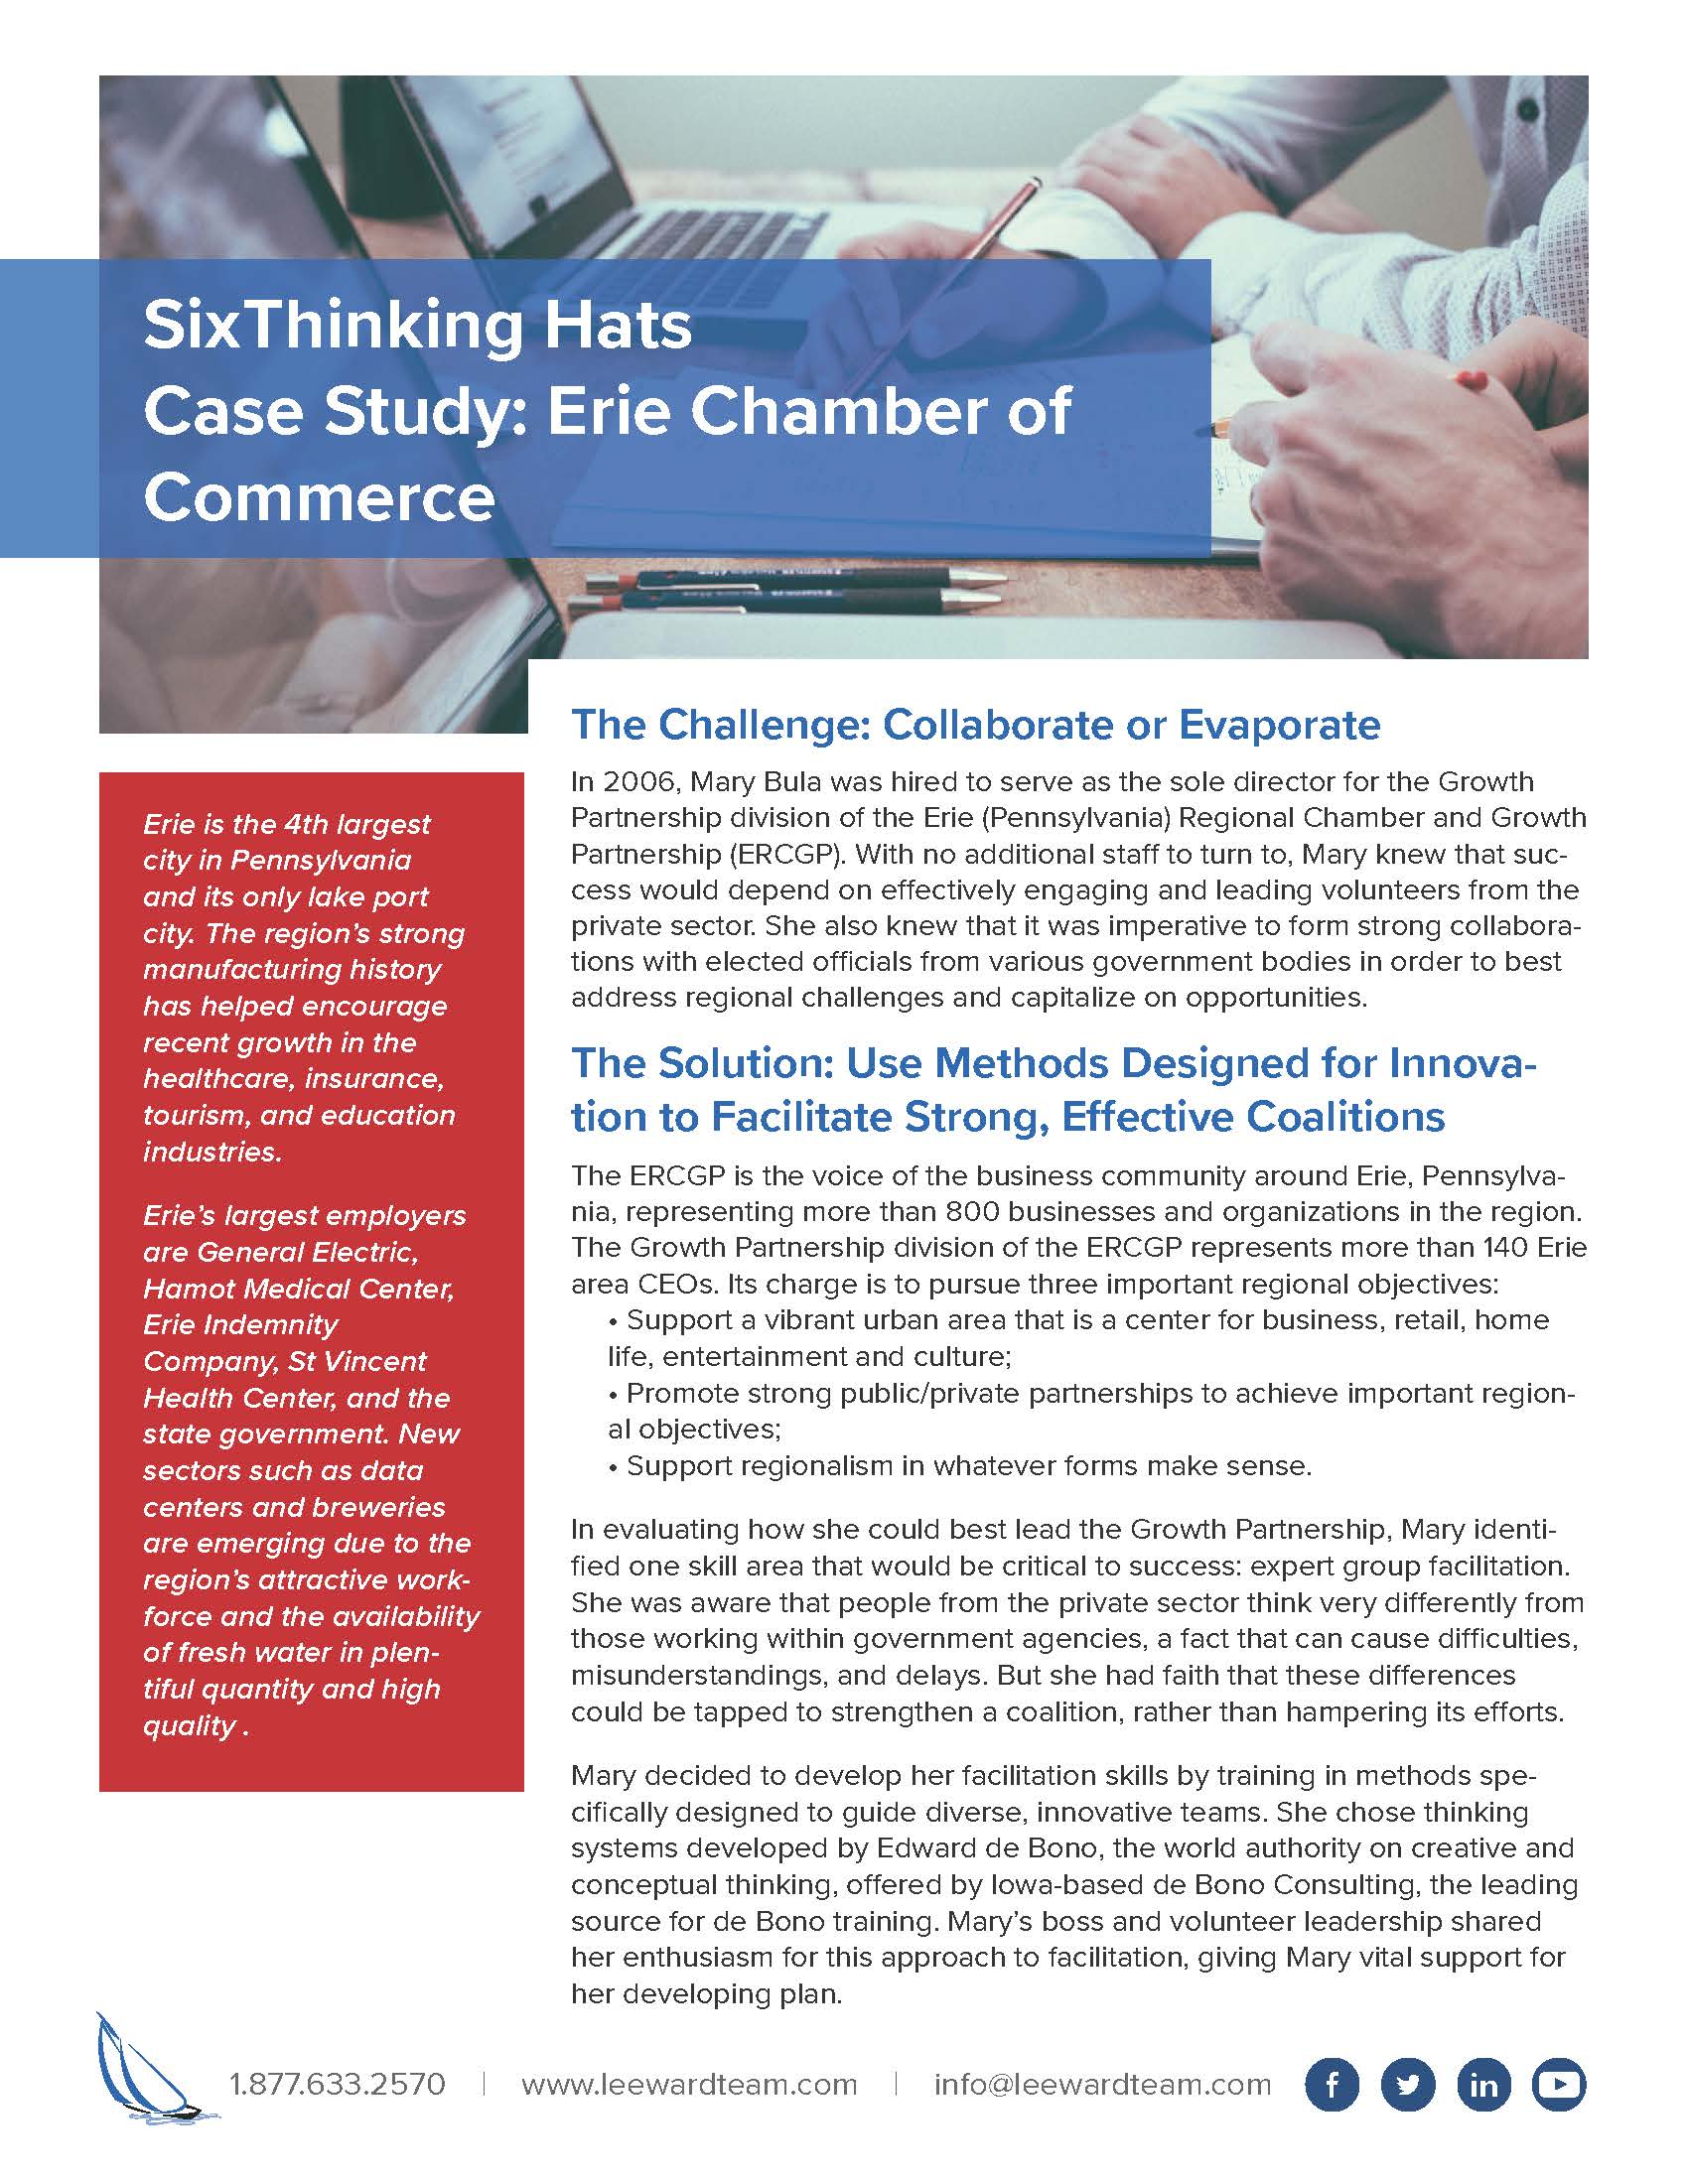 Case Study - Erie Chamber of Commerce